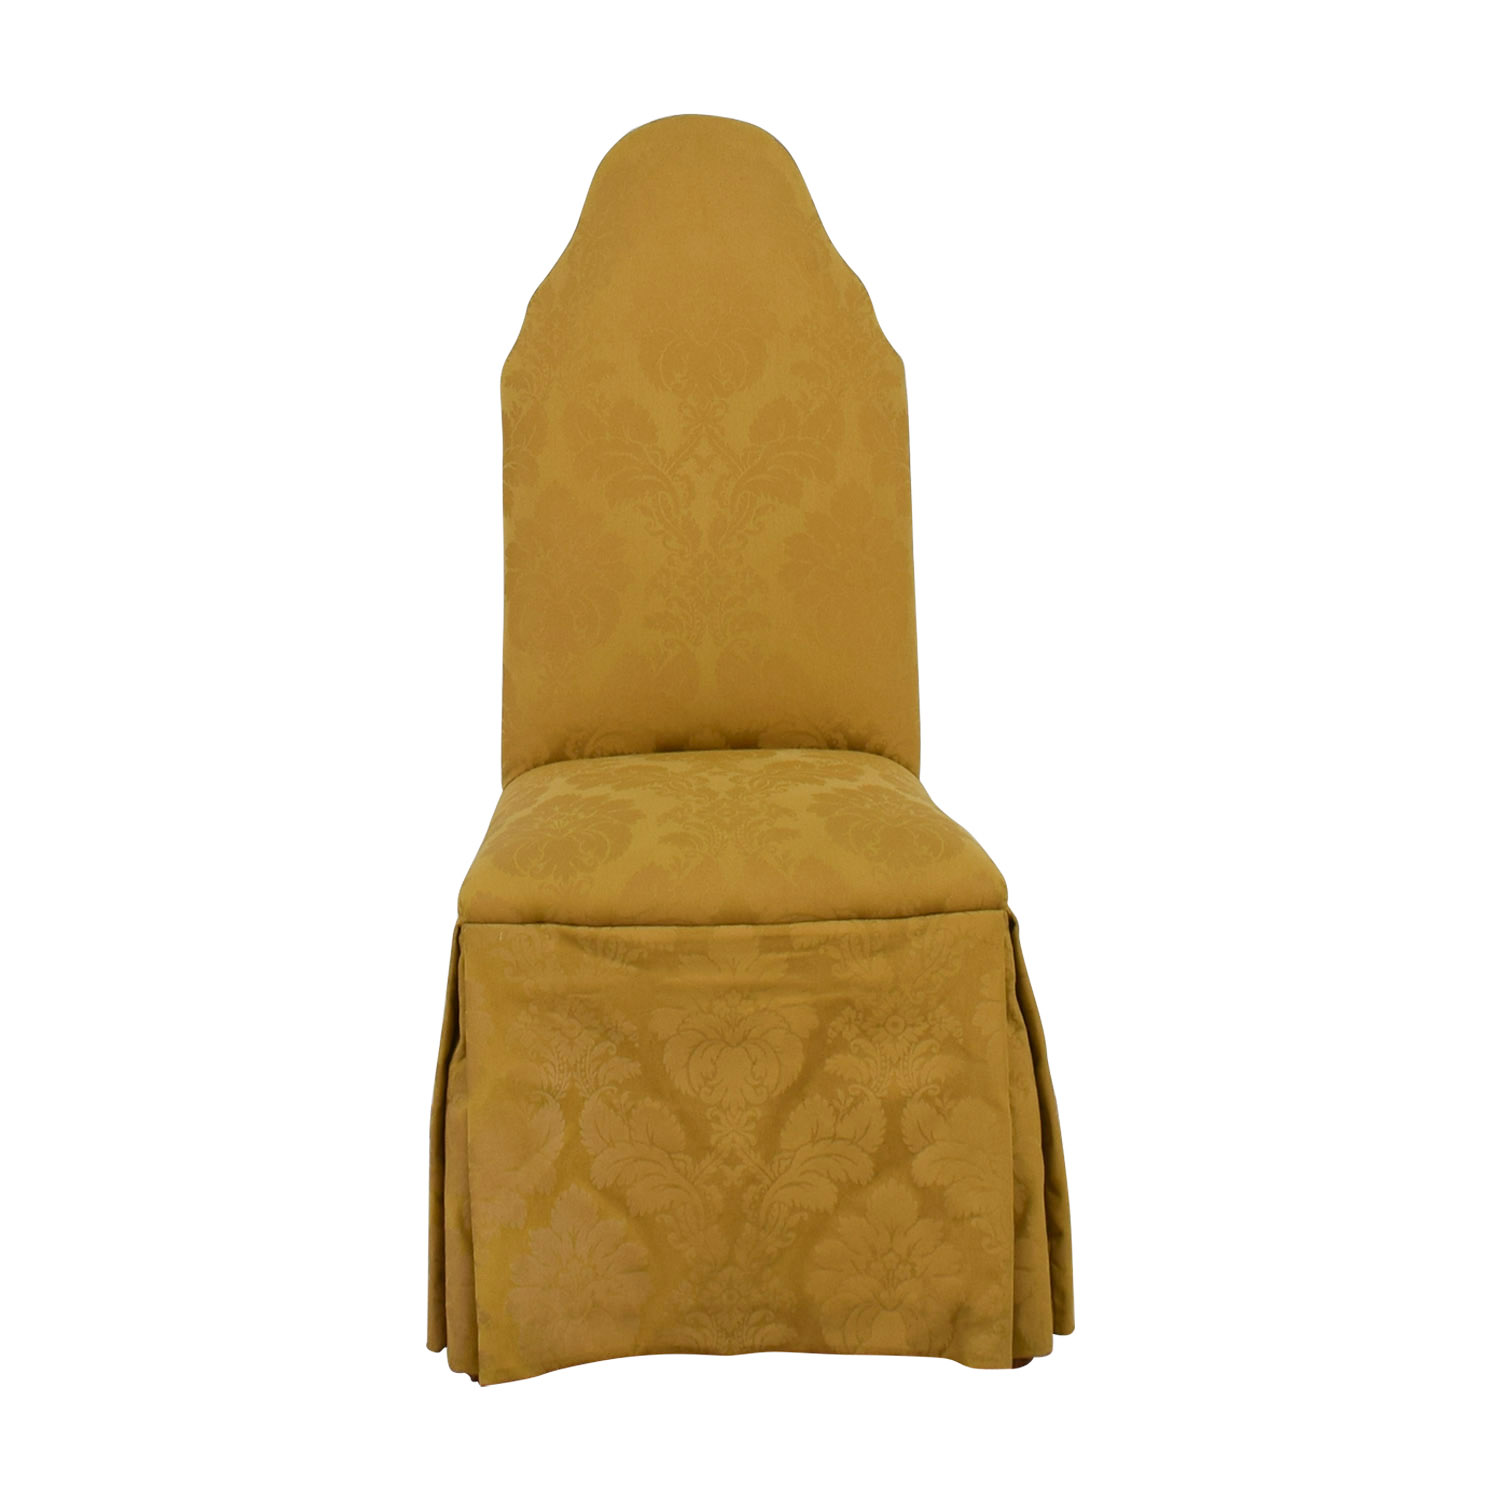 Gold Jacquard Slipcovered Chair second hand